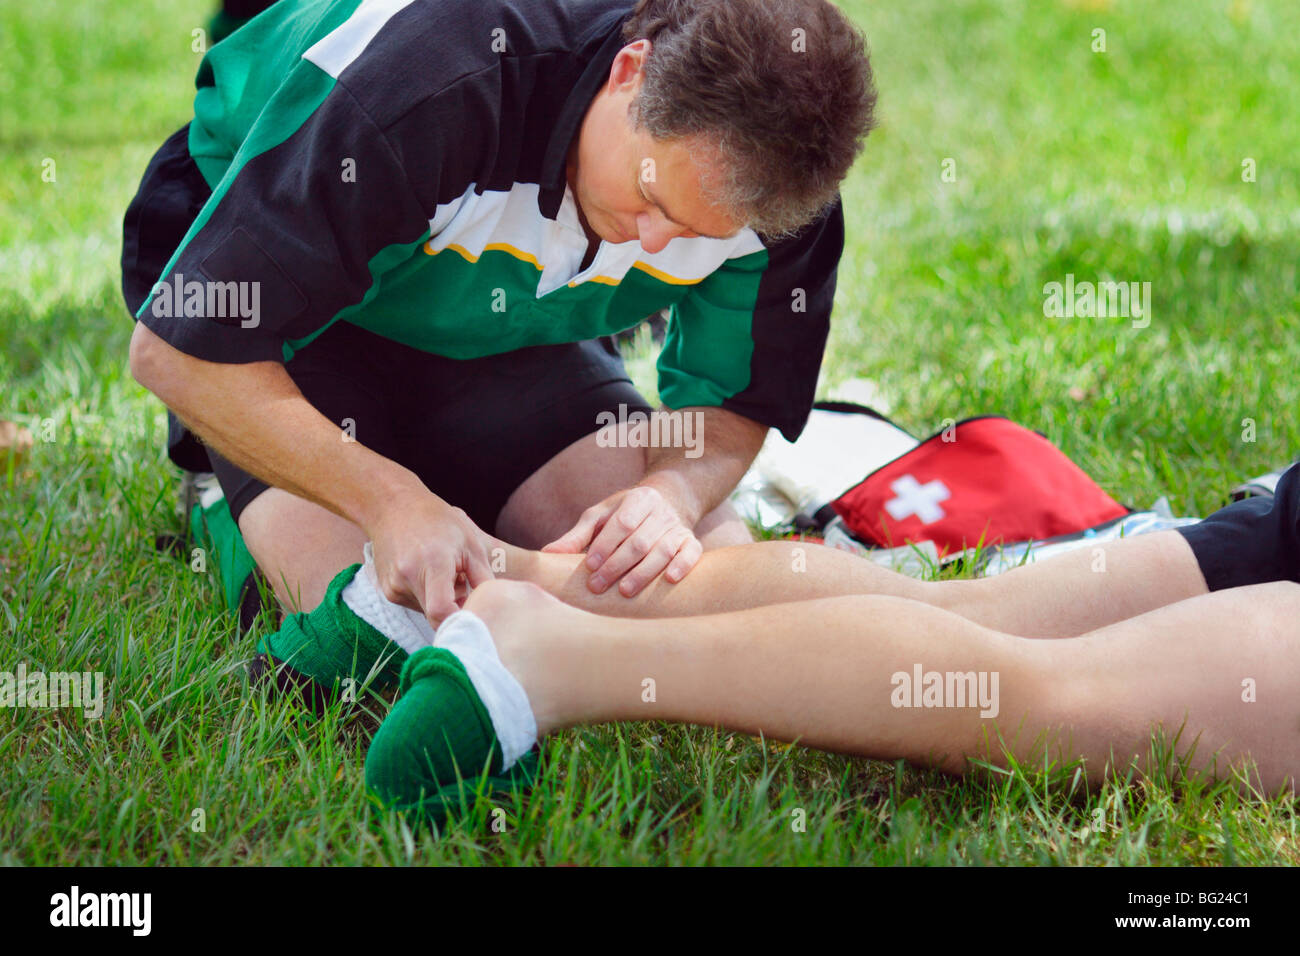 Man administering first aid to person's ankle - Stock Image